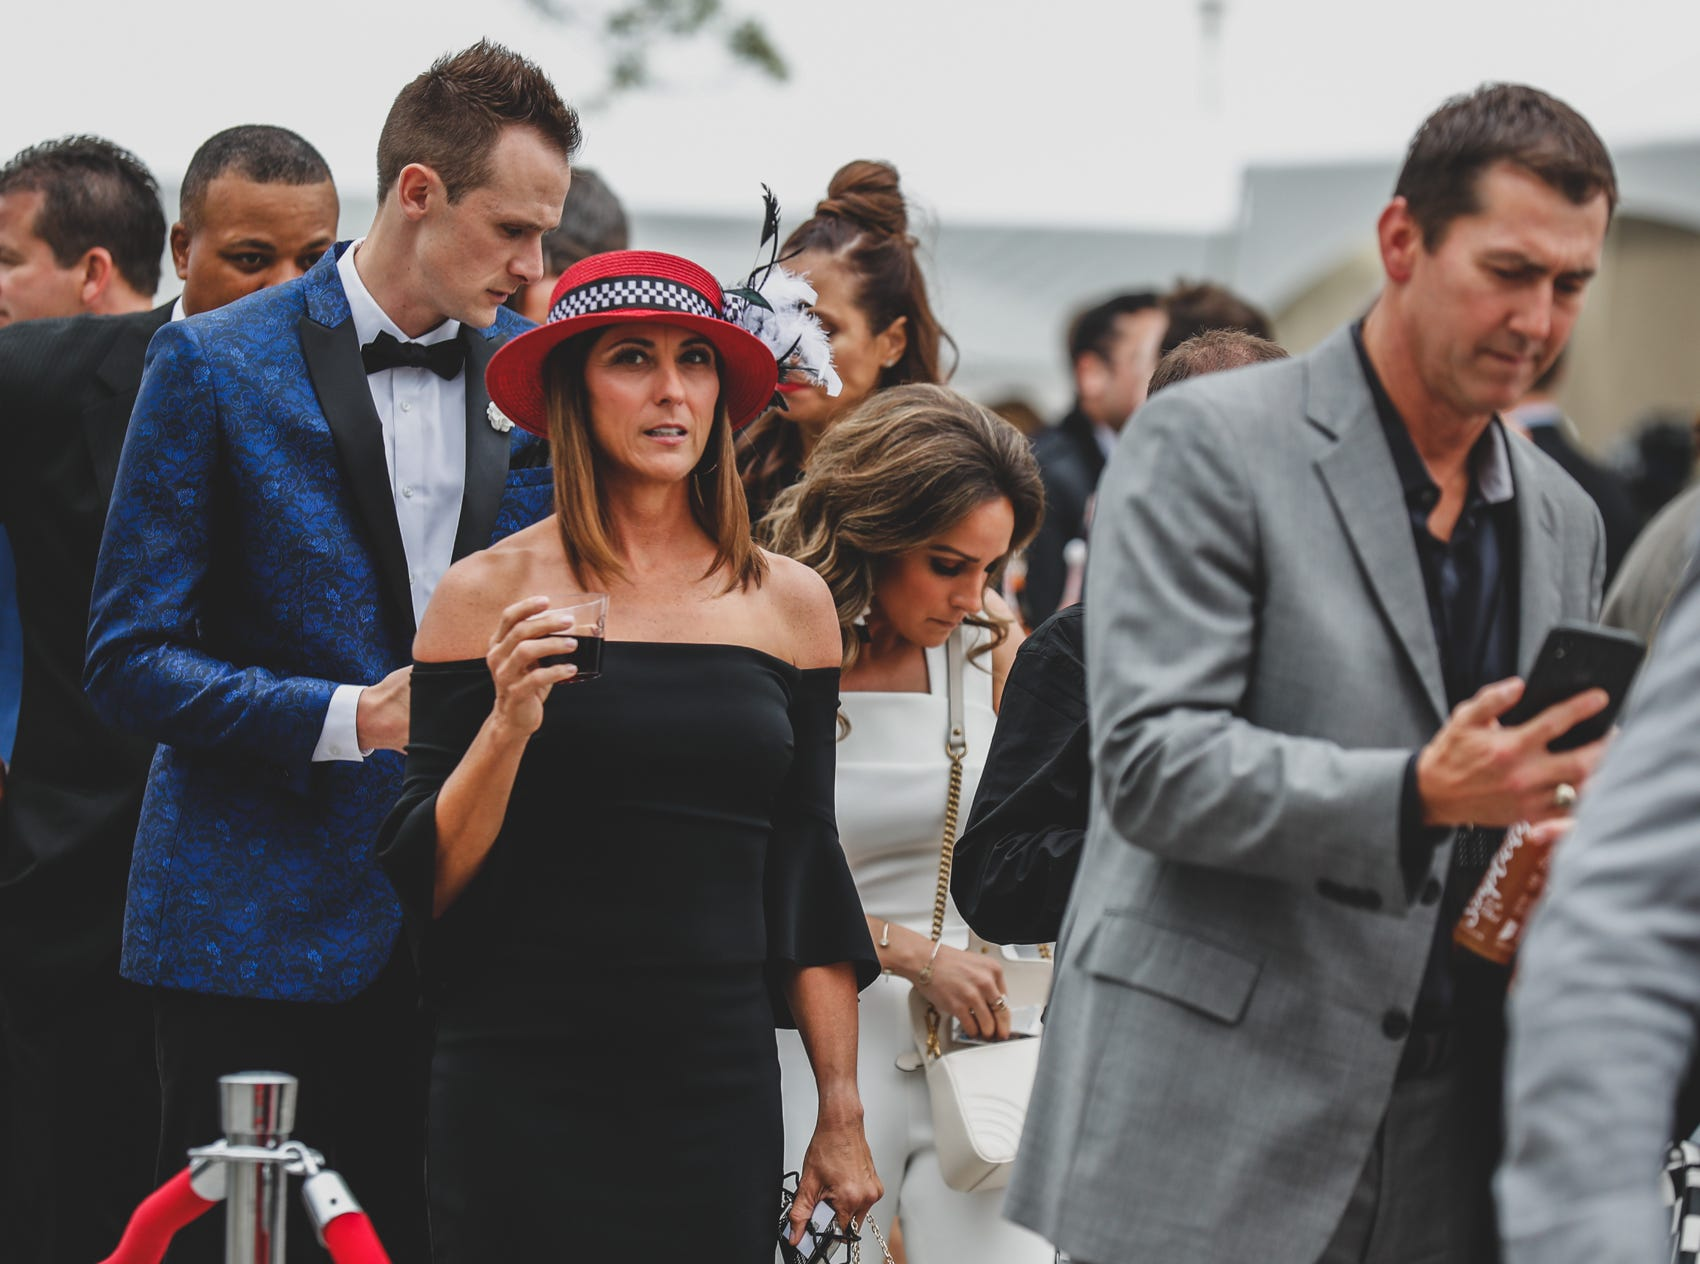 Guests dress to impress for an evening of food, fashion, and IndyCar racing fun at the Rev Indy fundraiser, held at the Indianapolis Motor Speedway on Saturday, May 4, 2019. Funds raised support the IU Health Foundation statewide and the IU Health Emergency Medical Center at IMS.